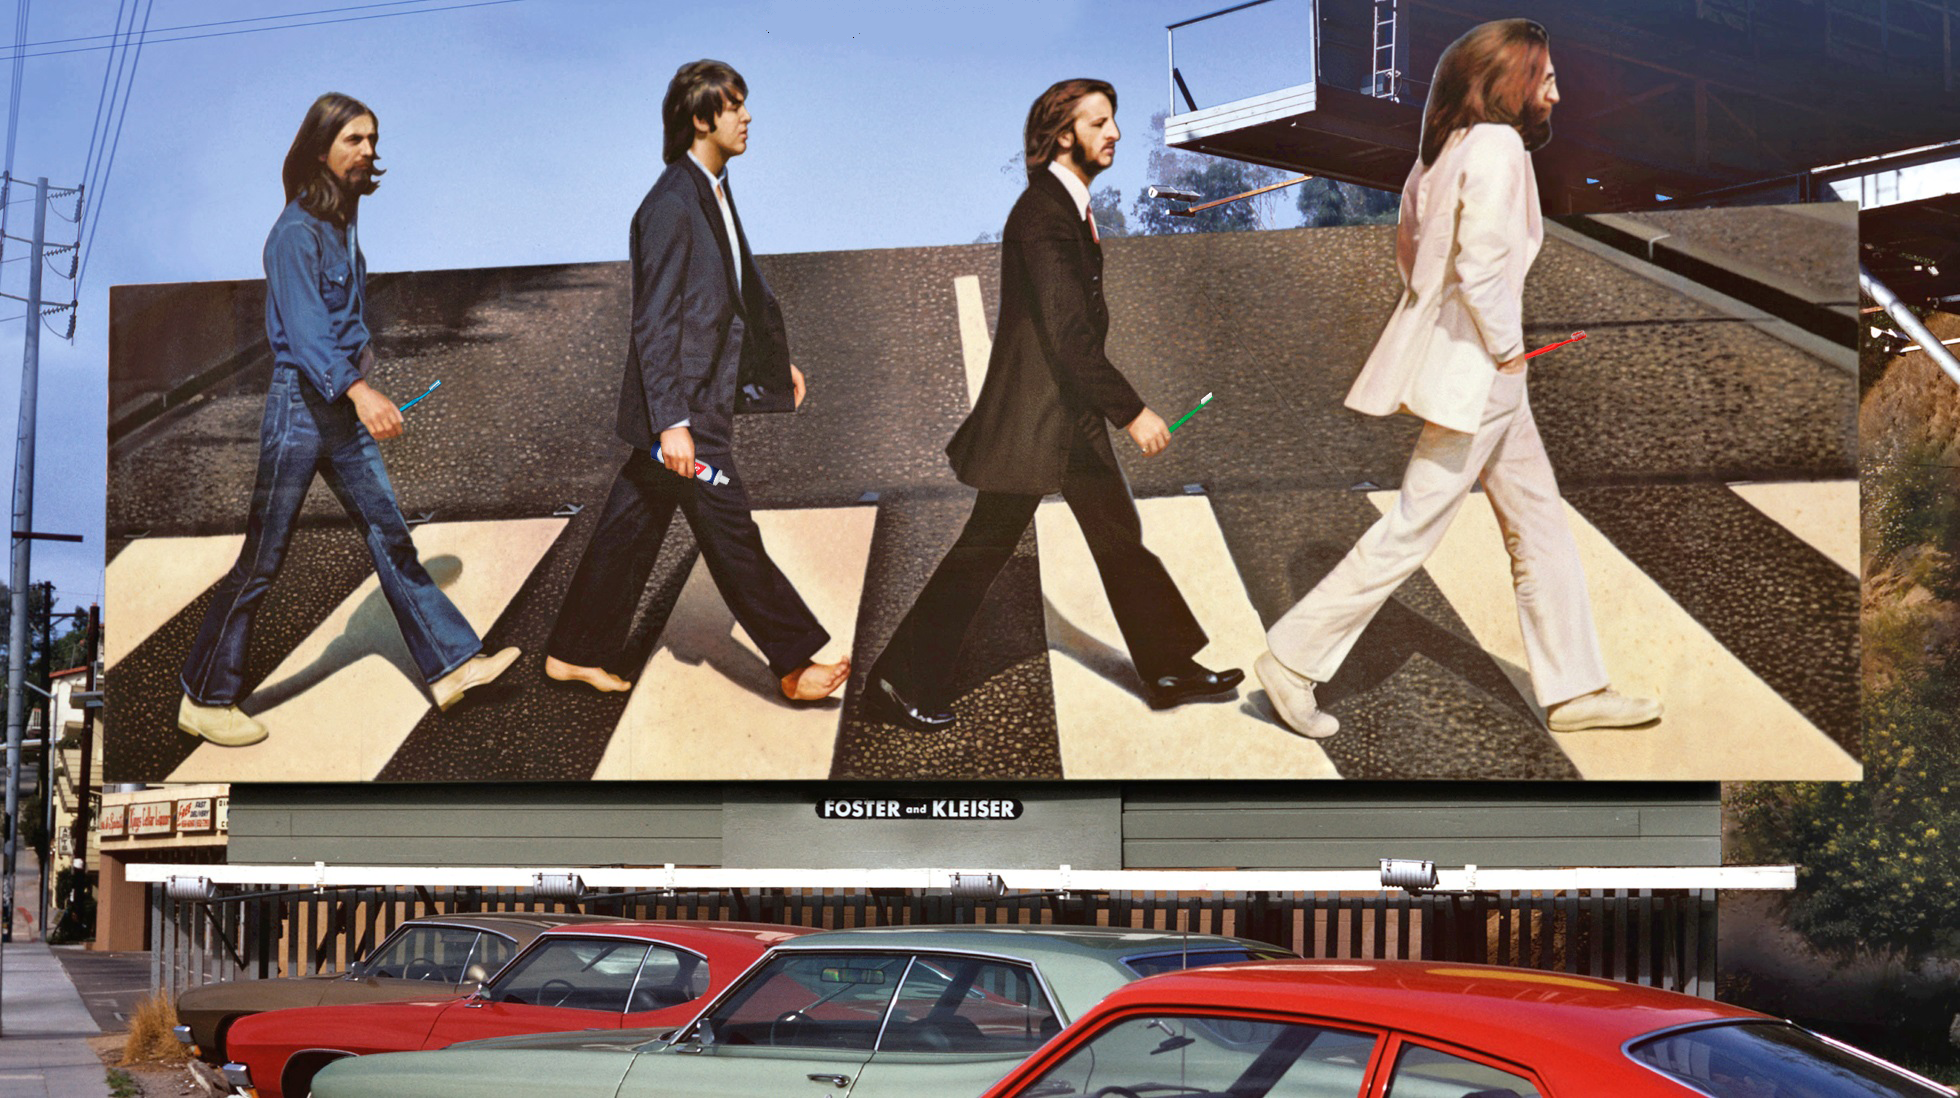 Beatles With Toothbrushes.png